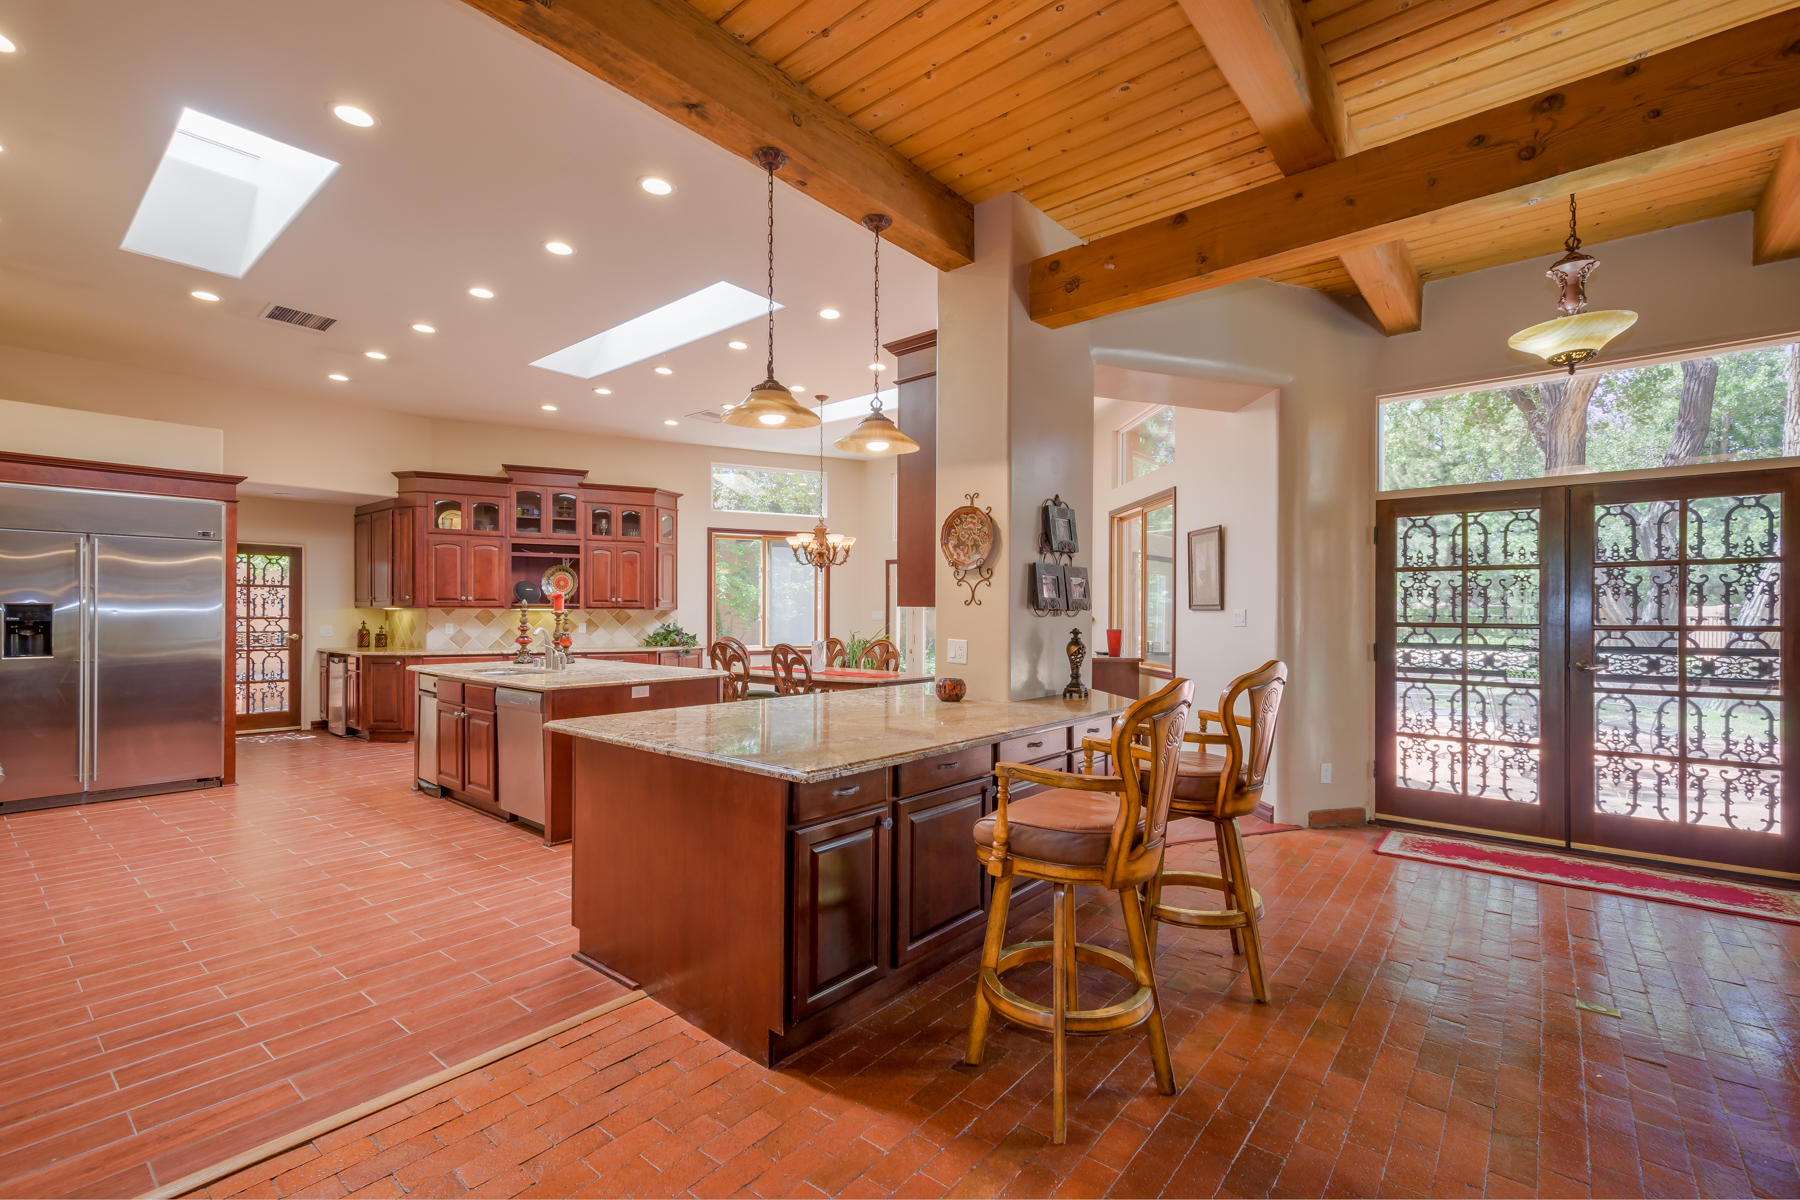 1278 ANDREWS Lane Property Photo - Corrales, NM real estate listing